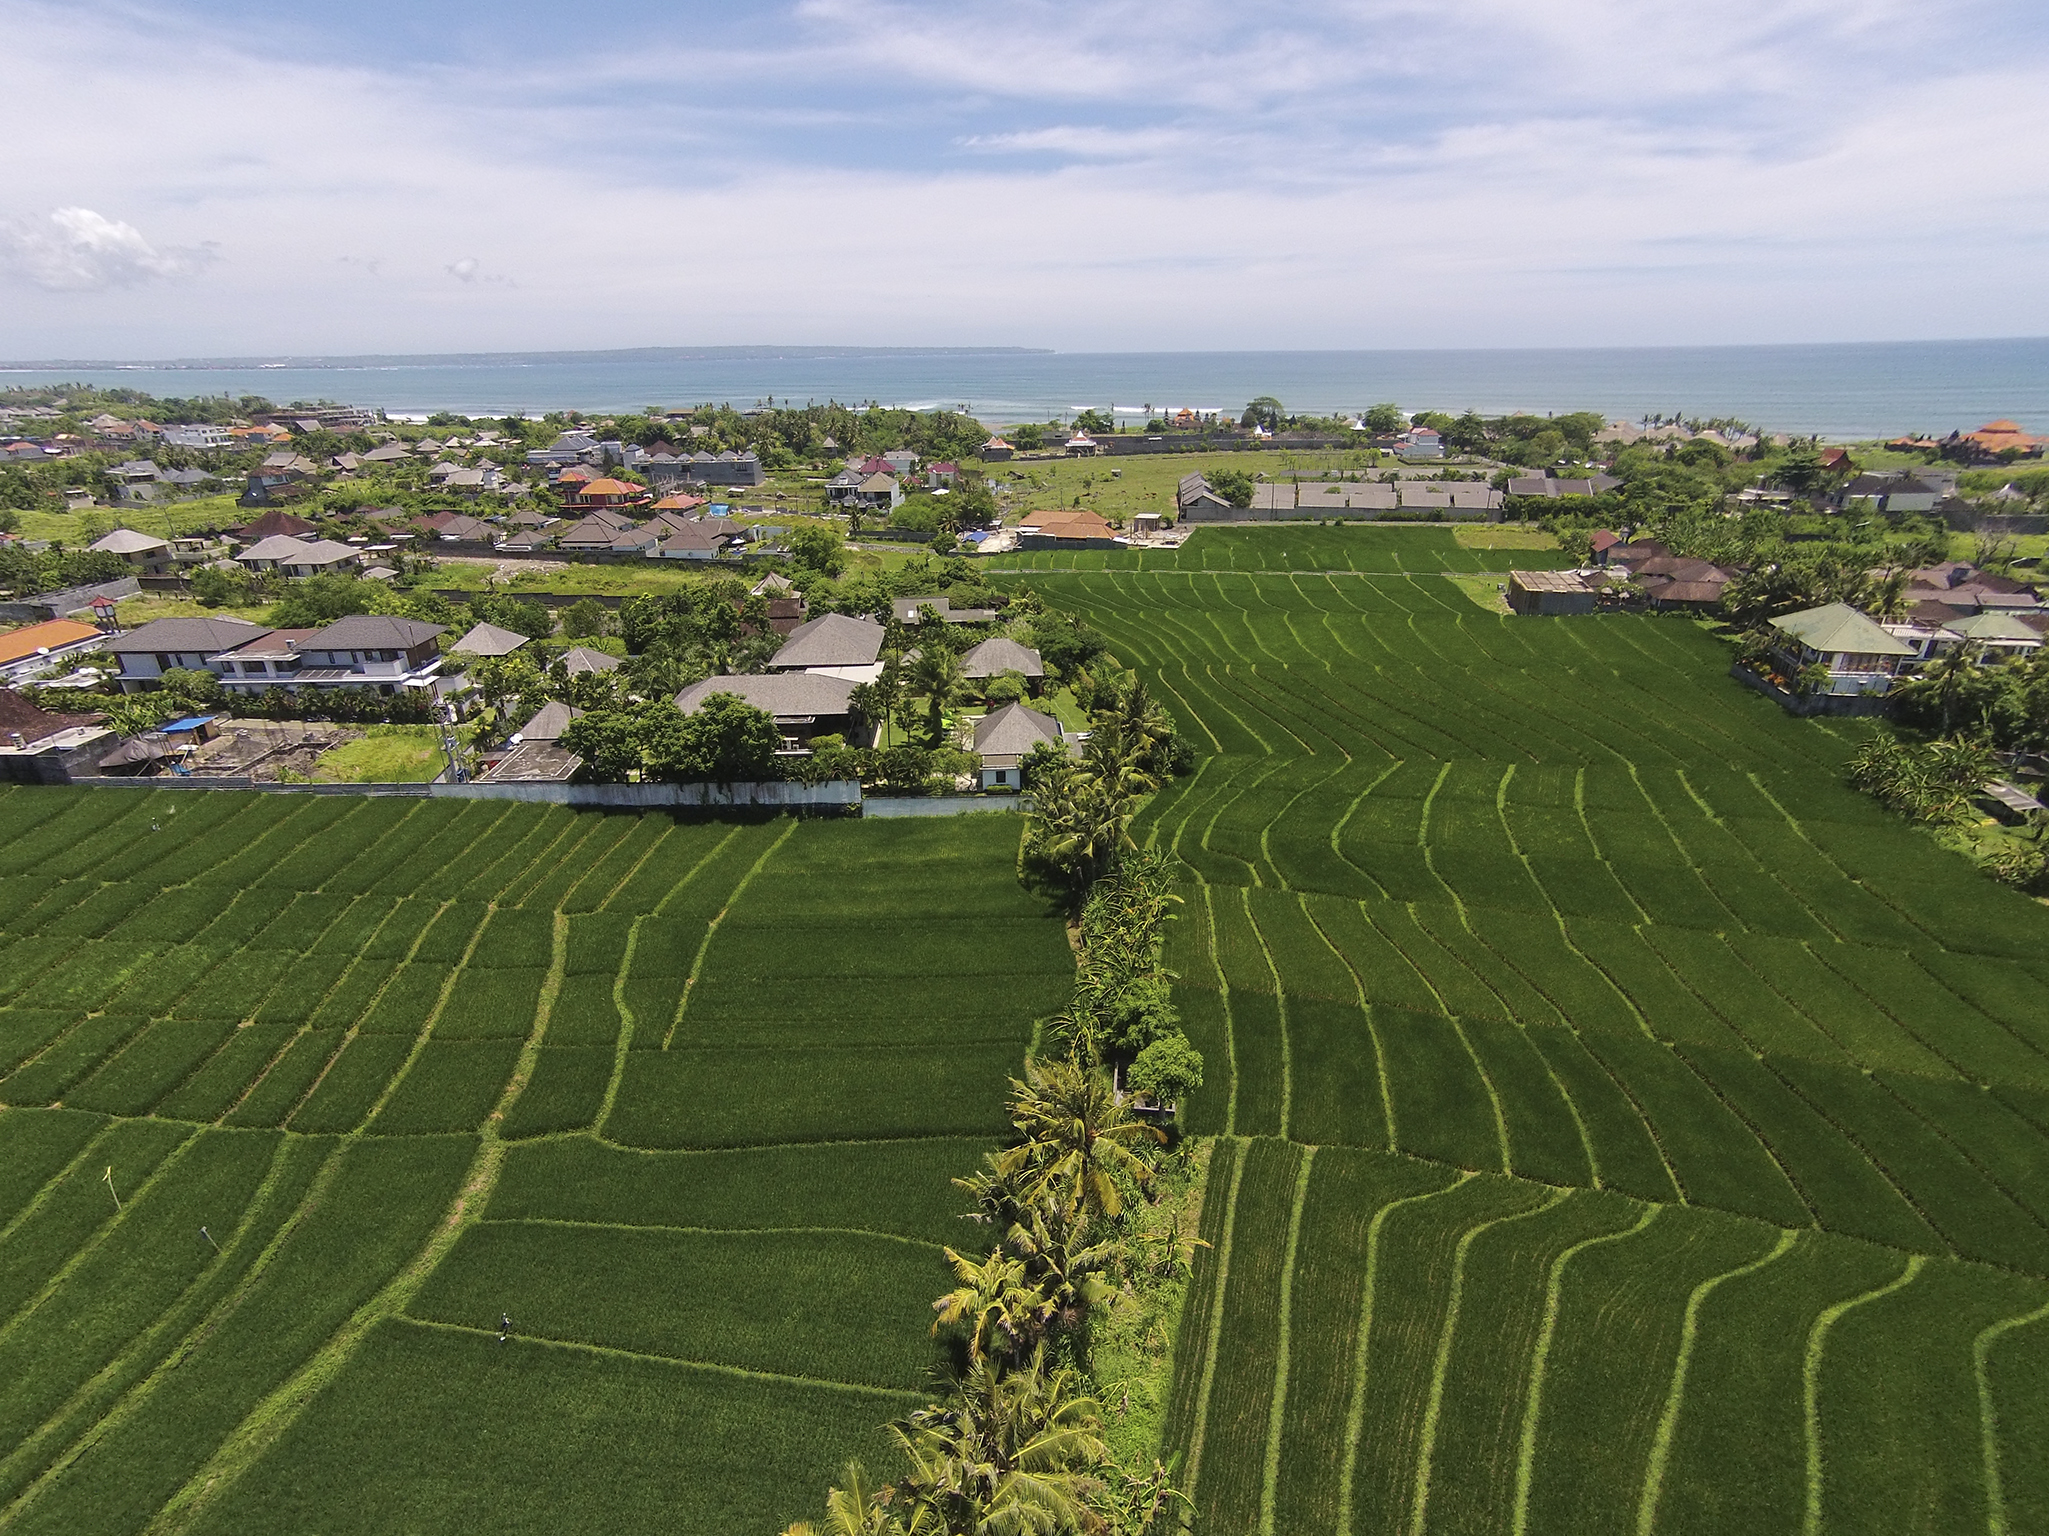 Bendega Rato - Ricefields and beachside<br /> - Bendega Rato, Canggu, Bali